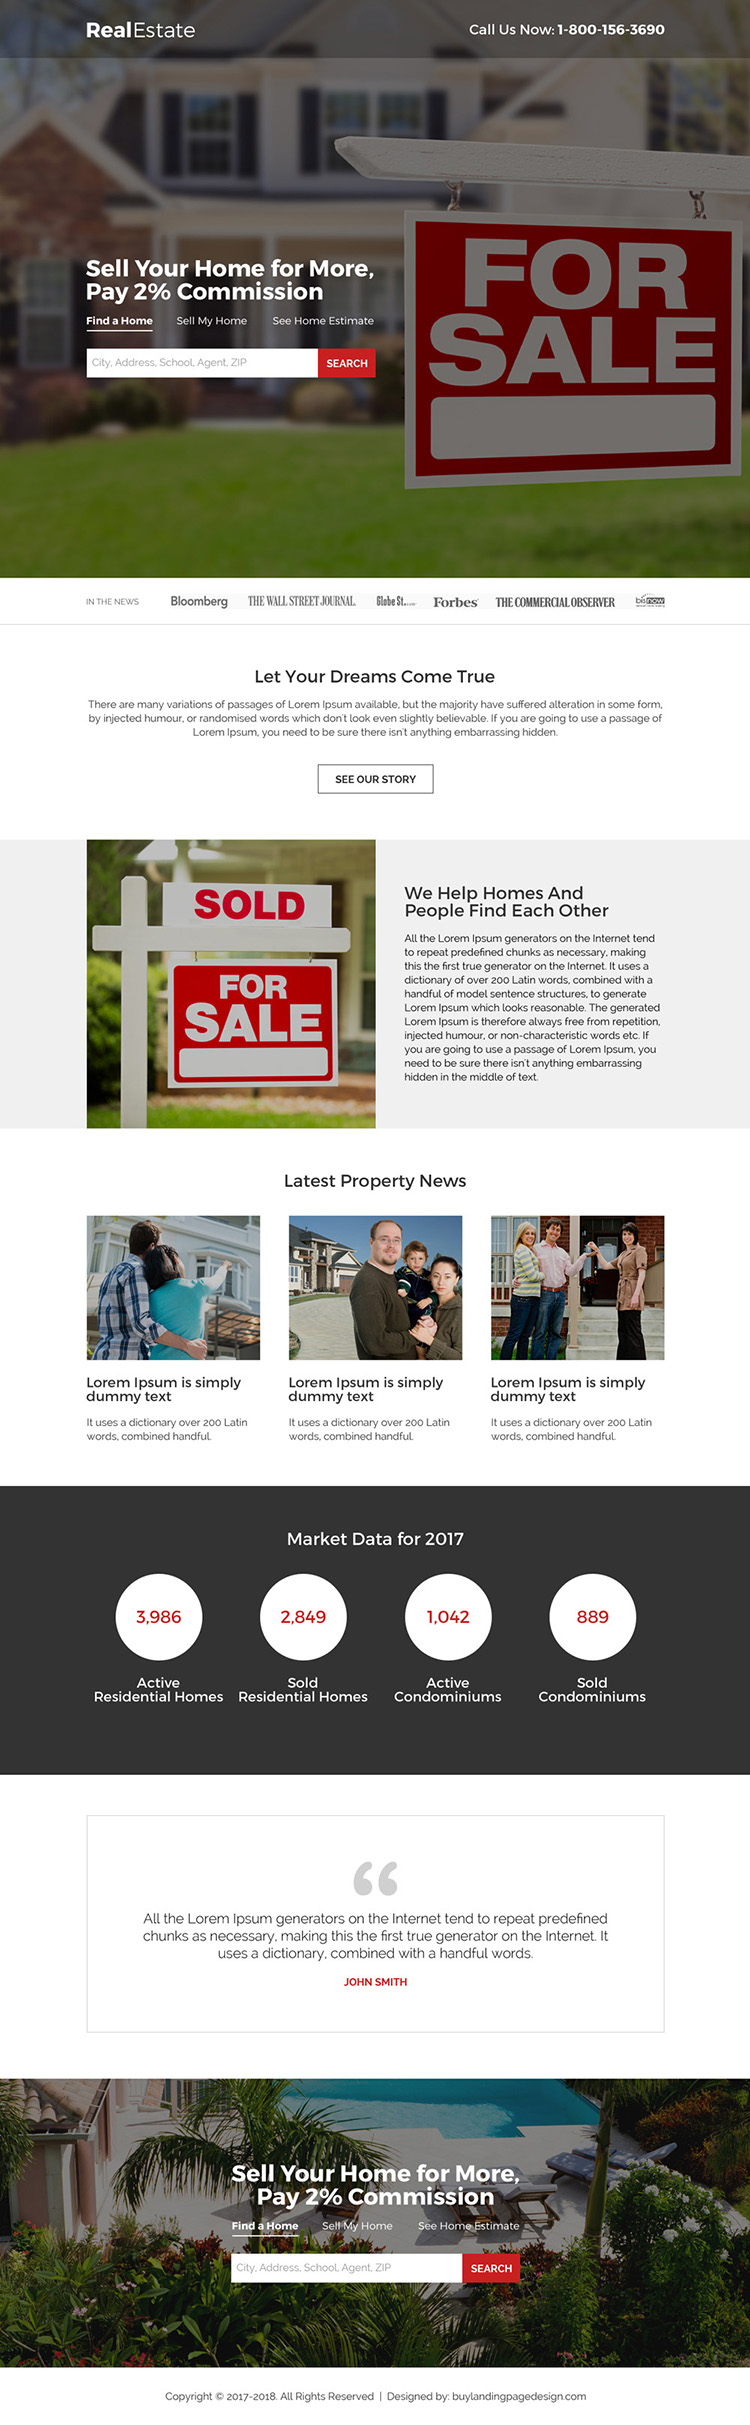 minimal real estate property listing landing page design